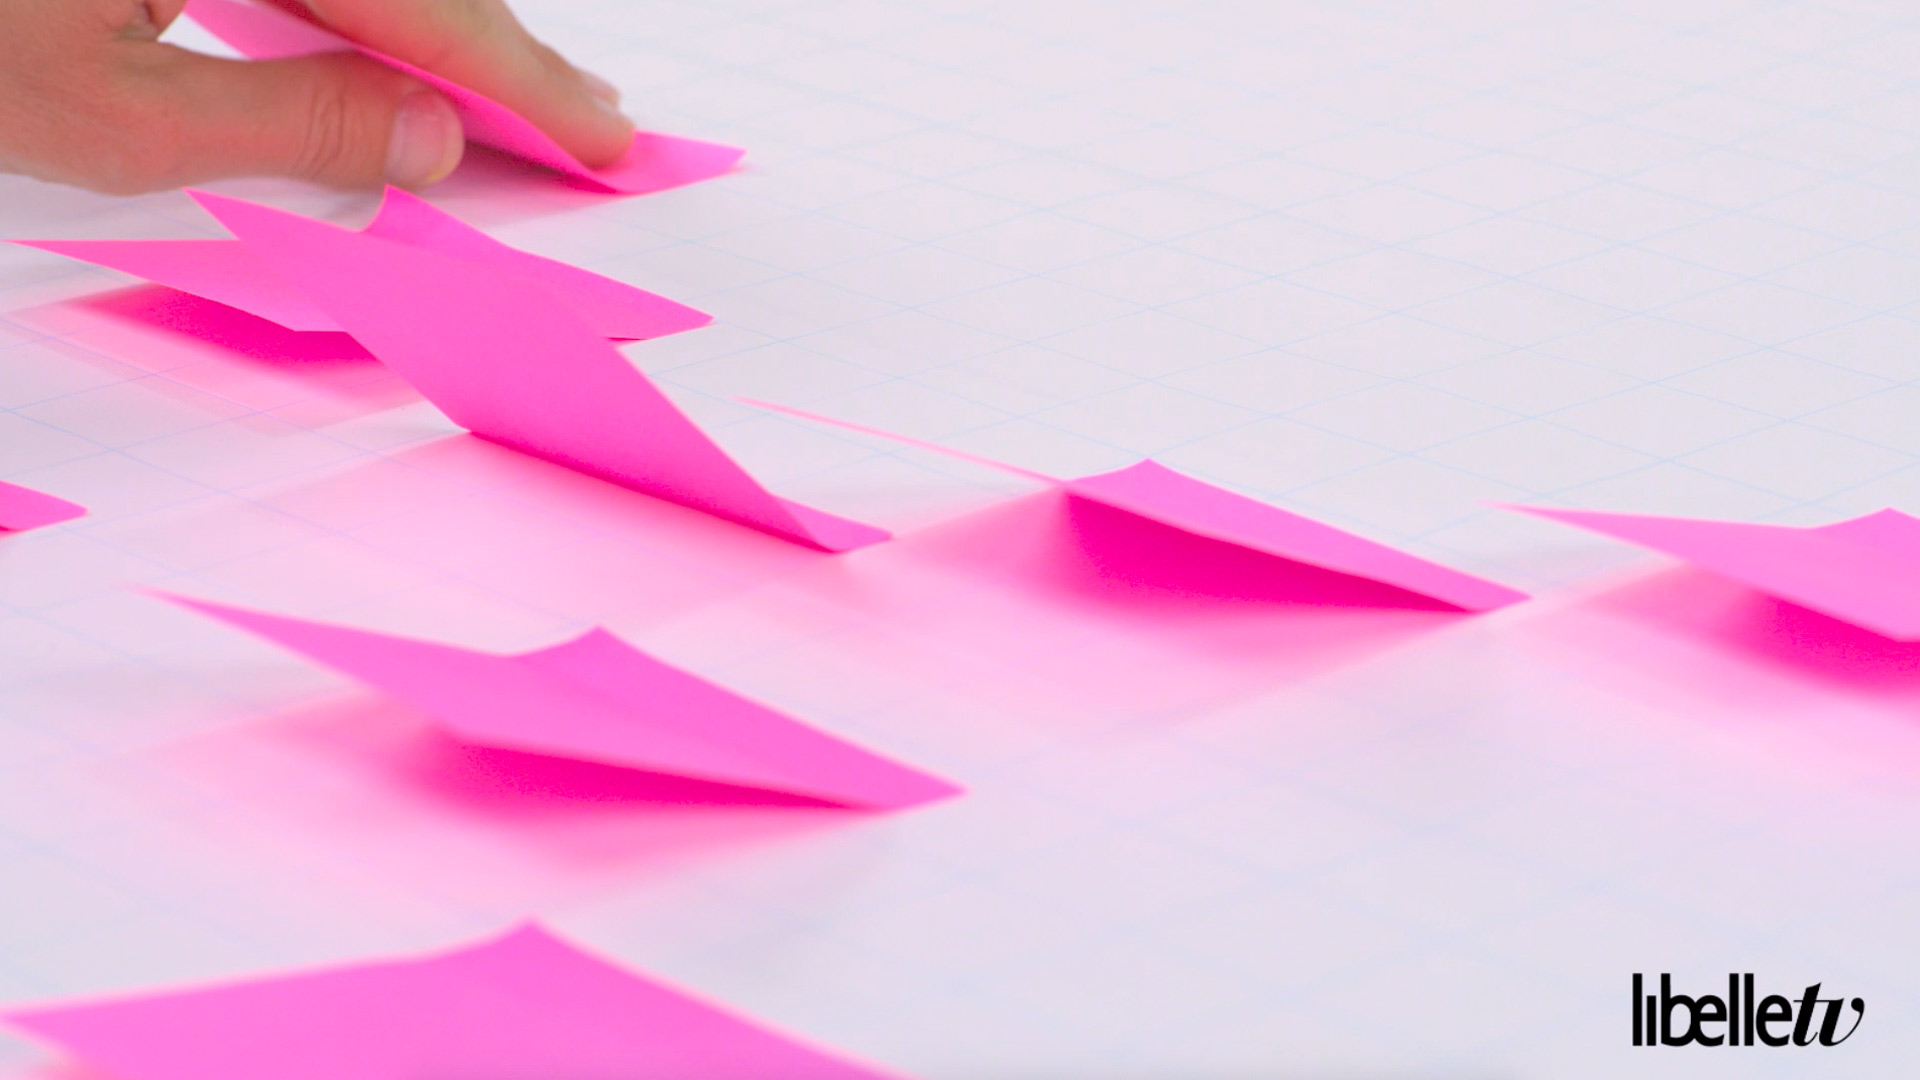 Nooit meer opkrullende post-its